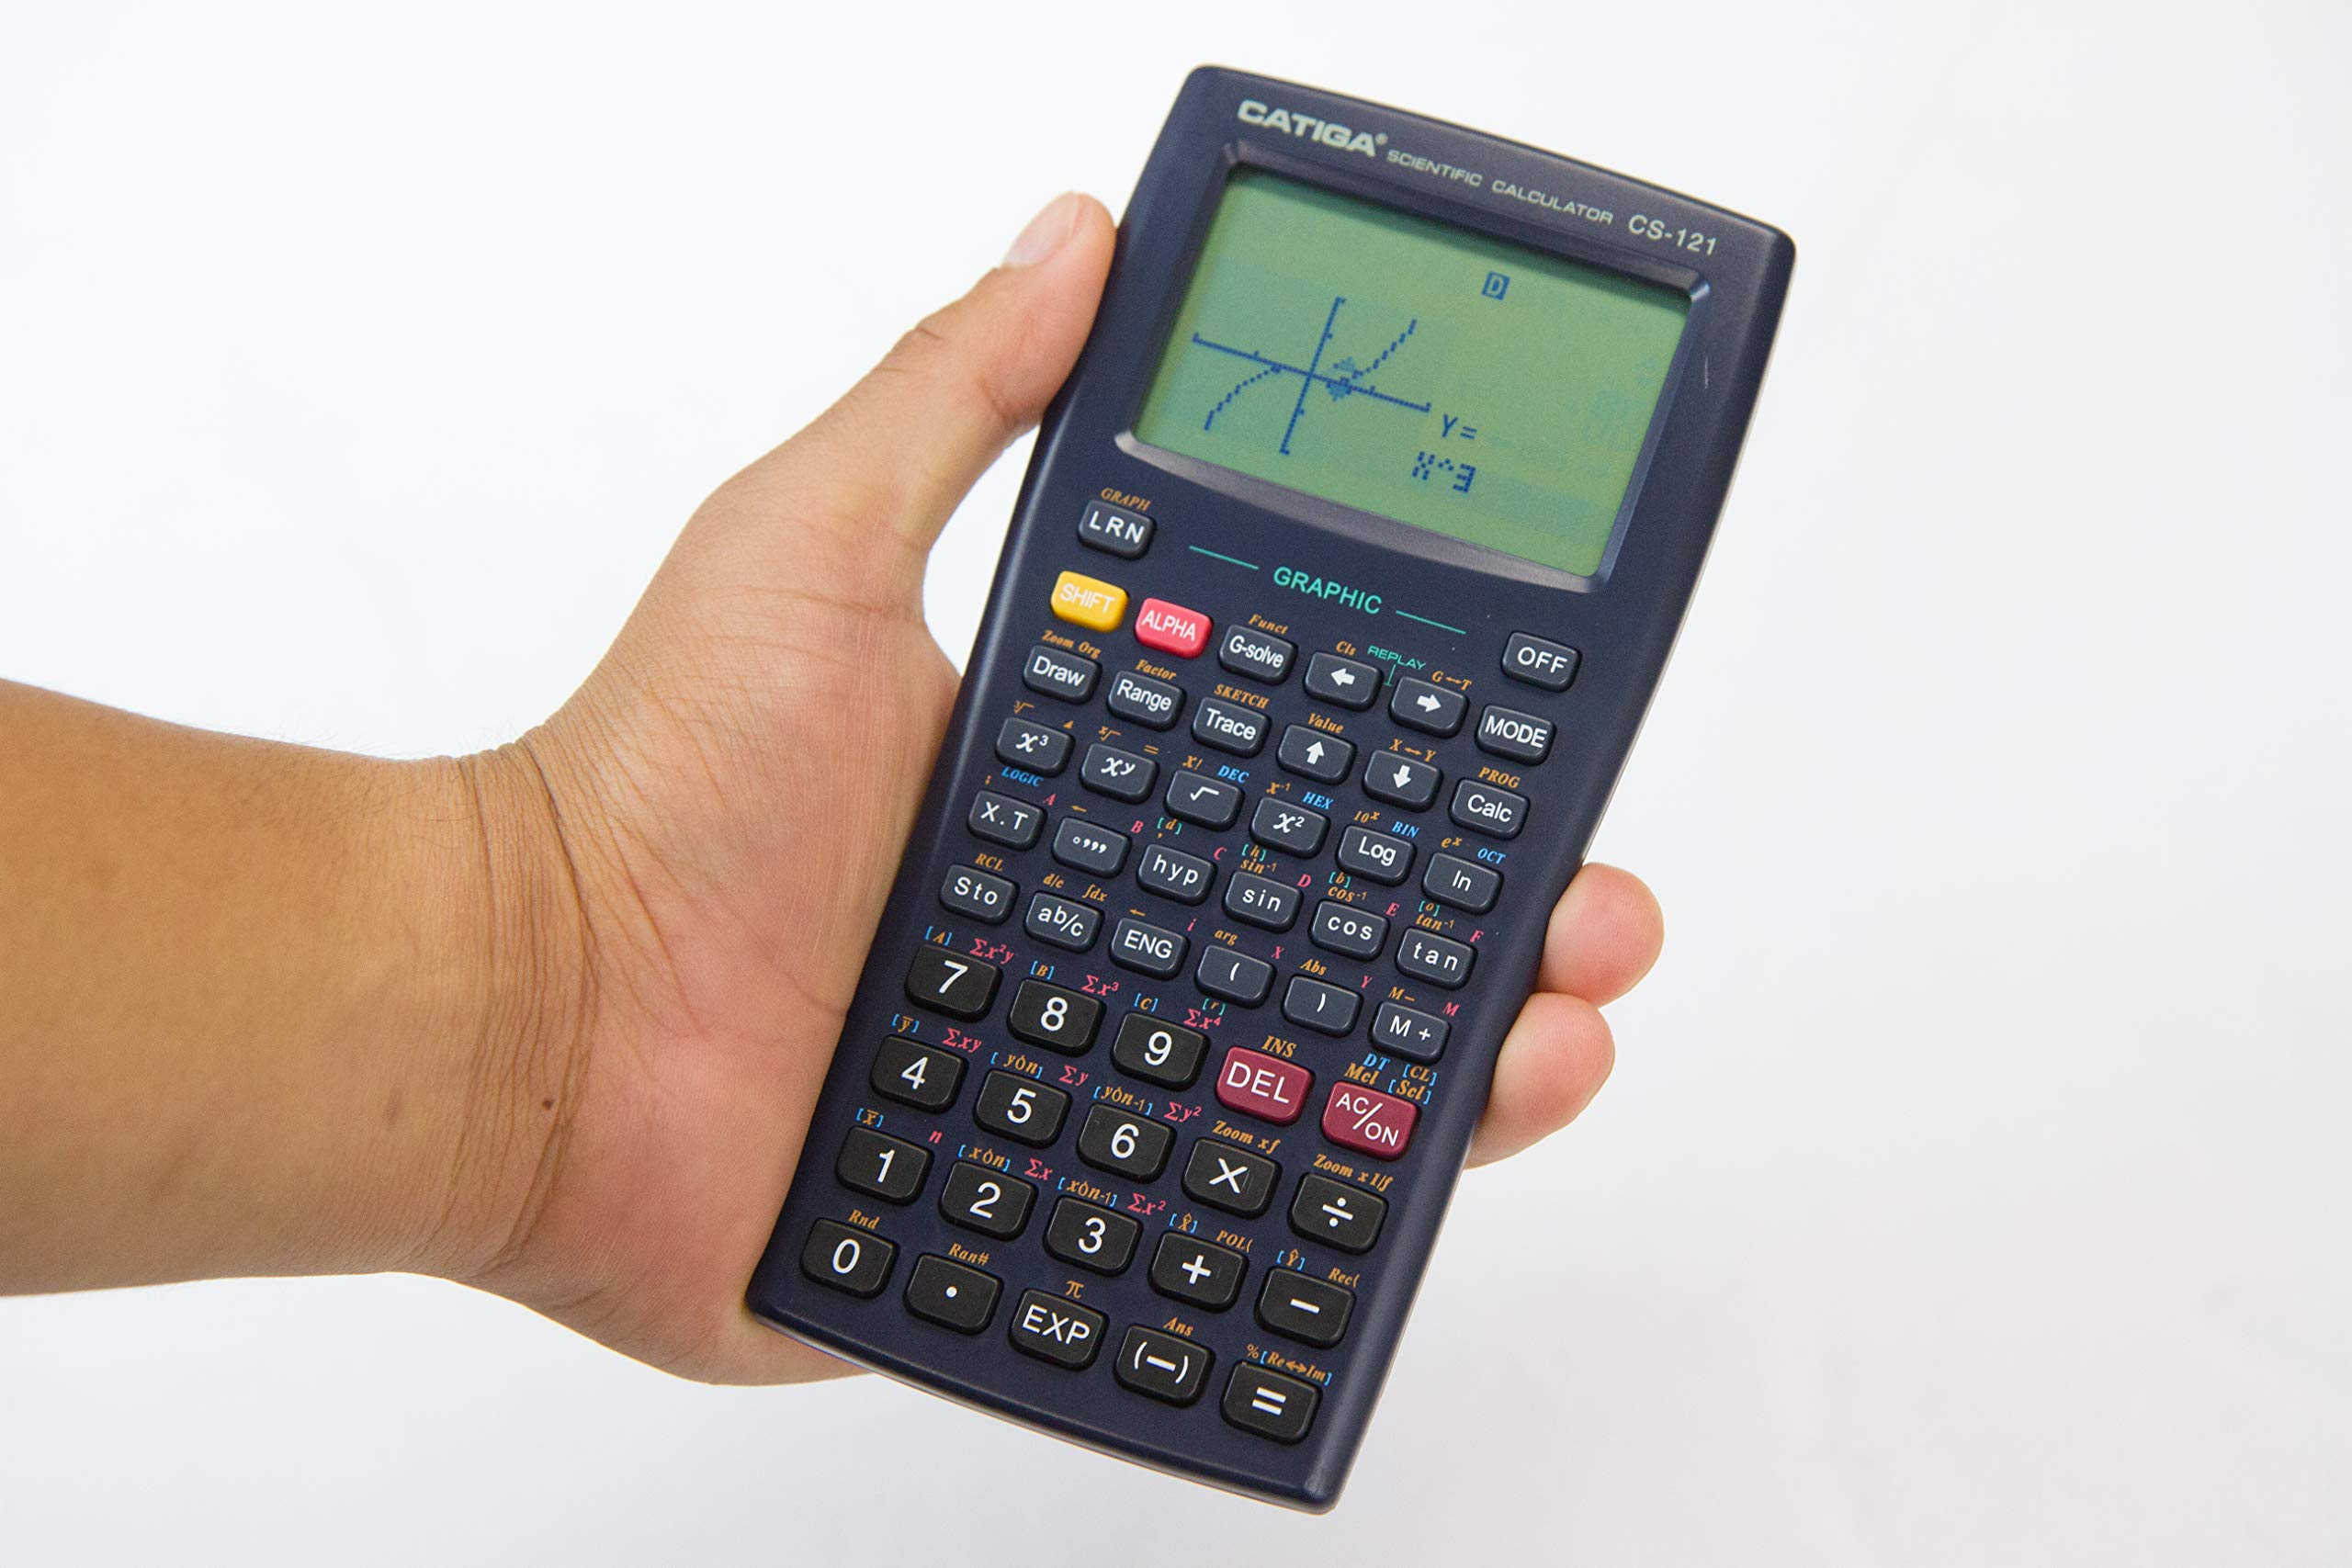 Graphing Calculator - CATIGA CS121 - Scientific and Engineering Calculator - Programmable System by CATIGA (Image #4)